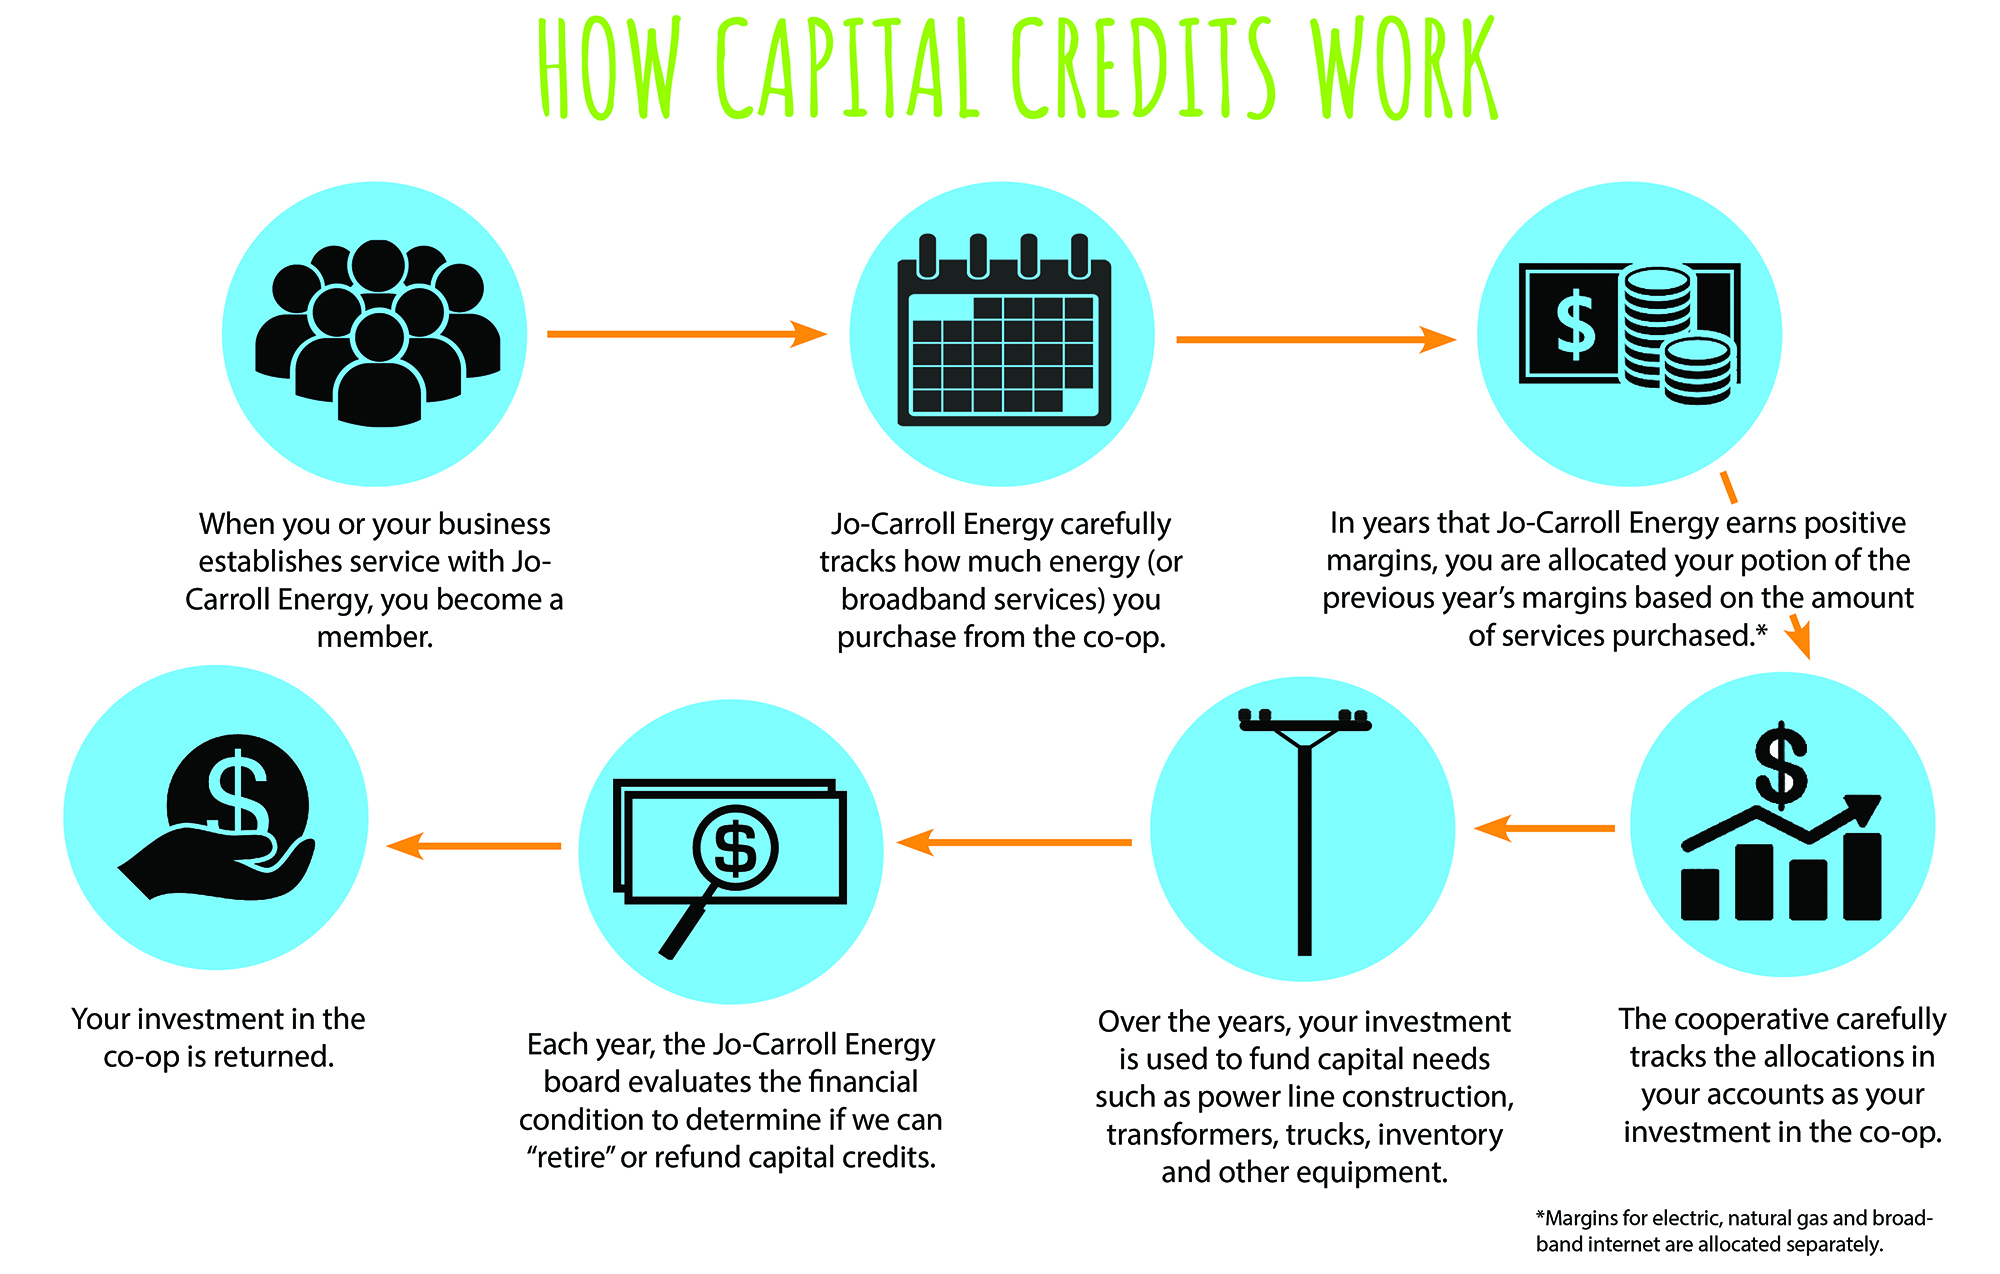 How Capital Credits Work